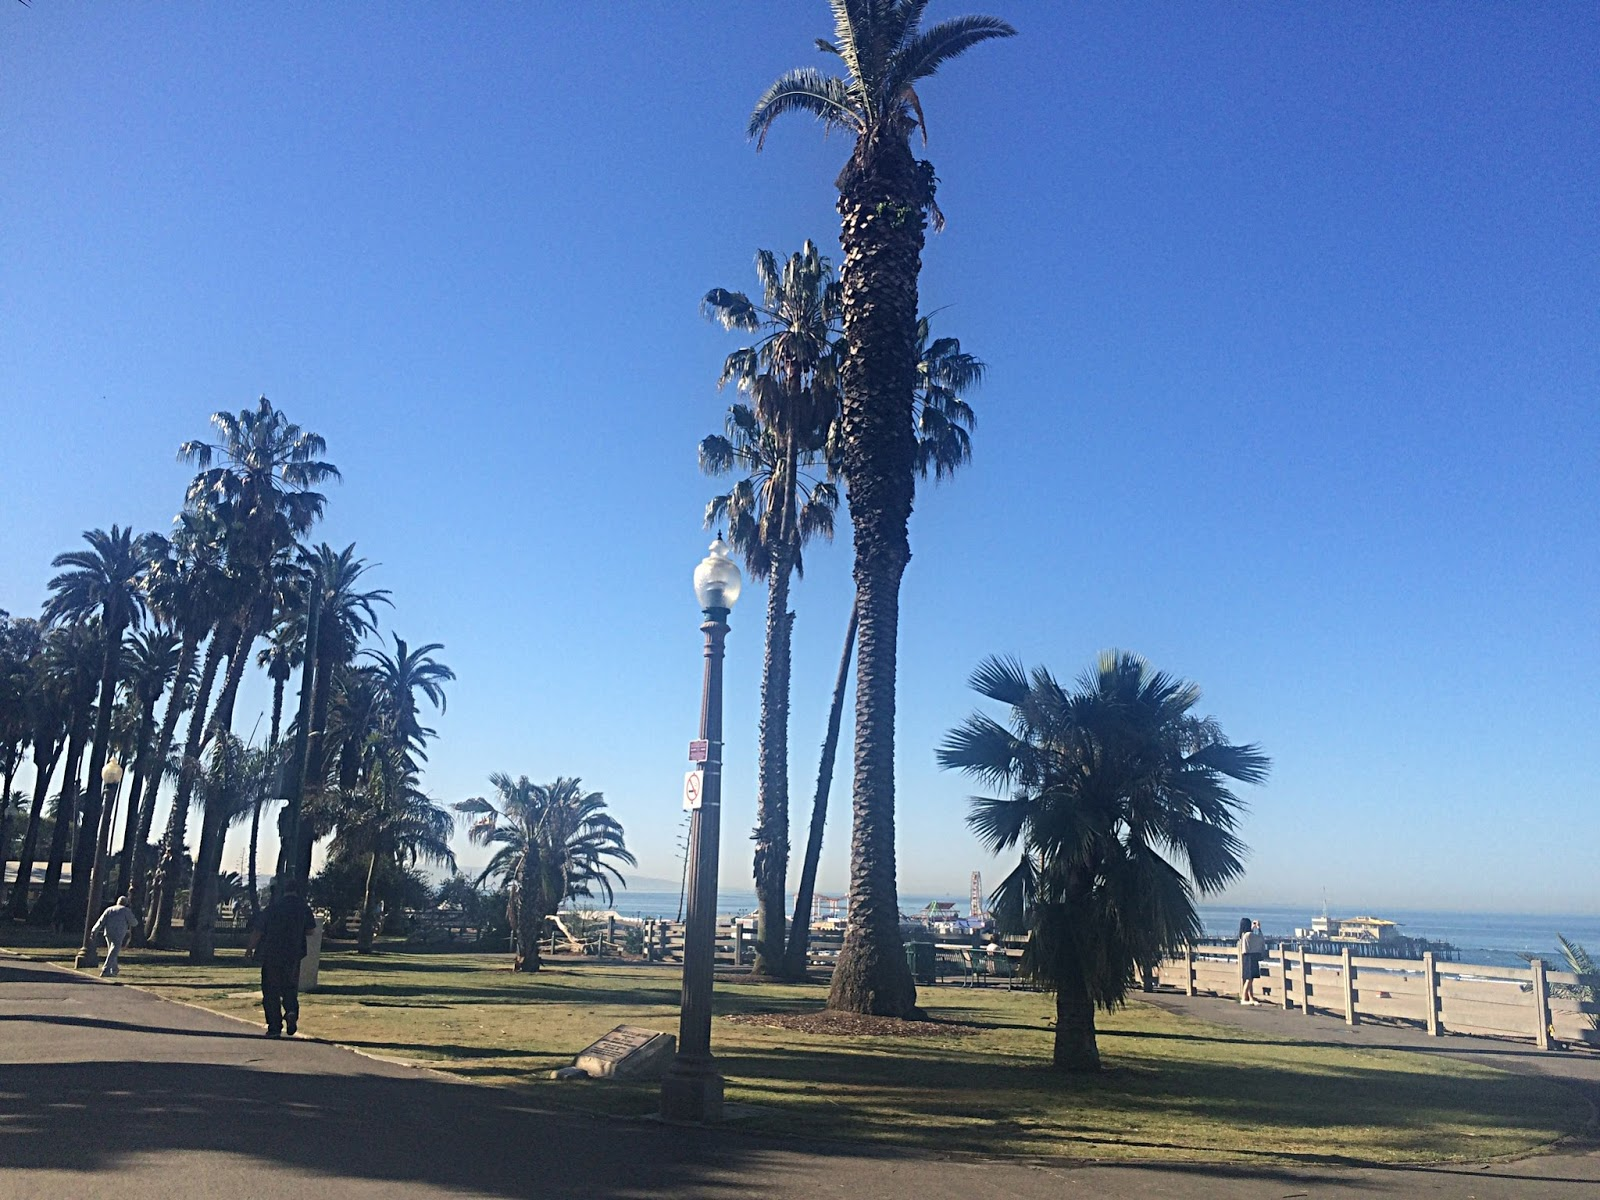 Los Angeles - Santa Monica Beach